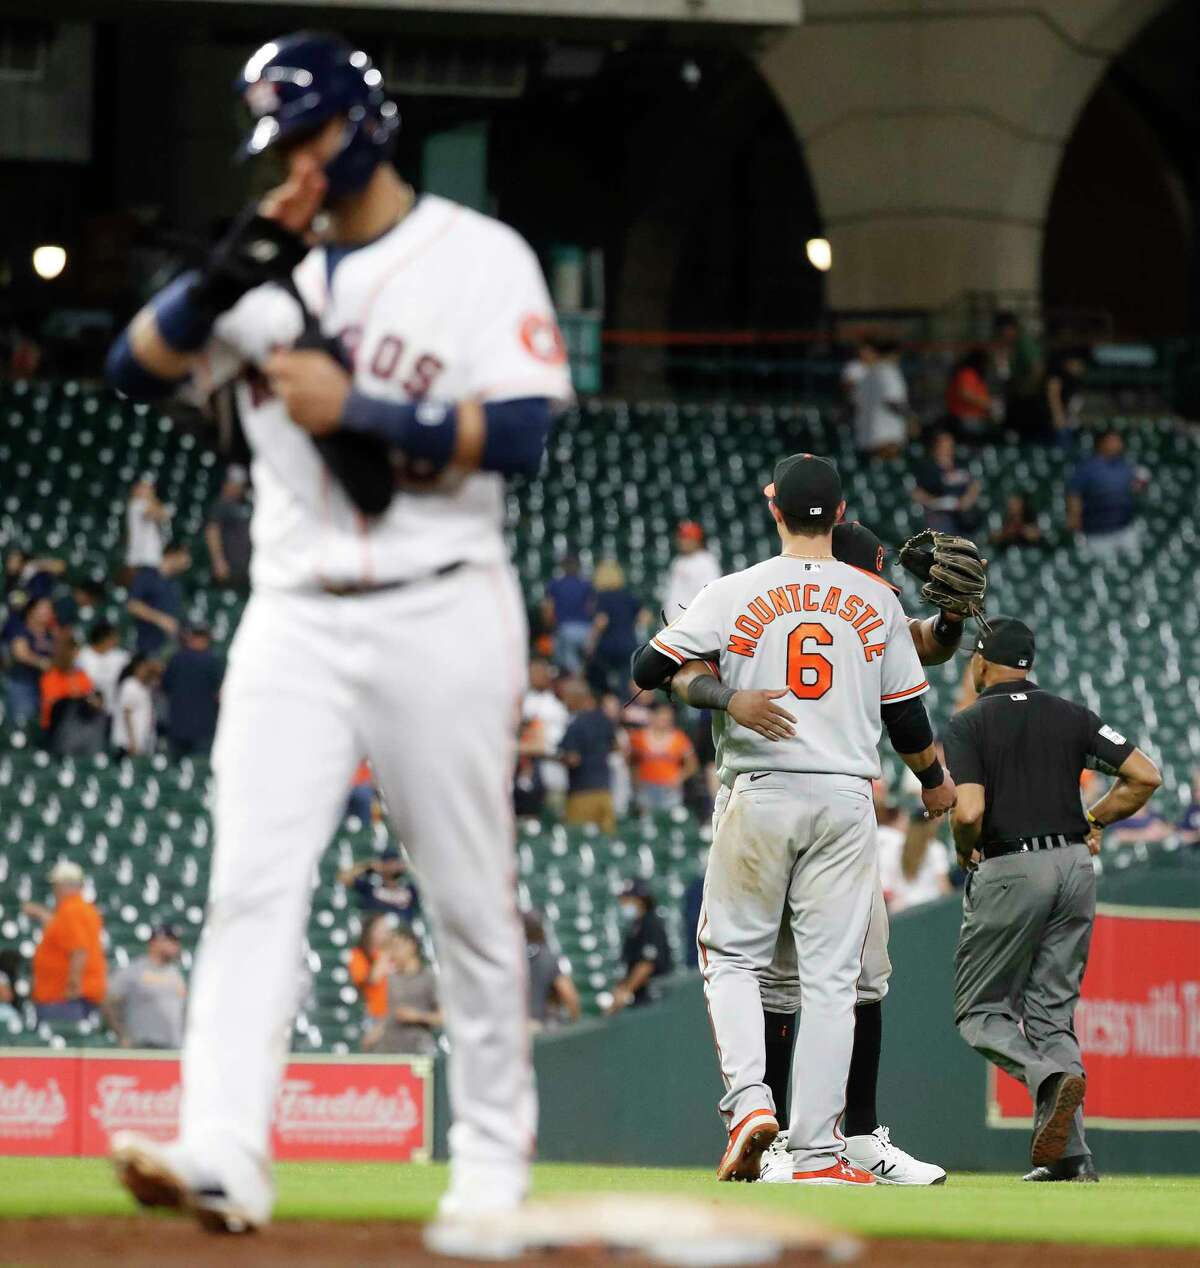 Baltimore Orioles Maikel Franco (3) hugsRyan Mountcastle (6) as Houston Astros Yuli Gurriel (10) walked back to the dugout after the Orioles beat the Houston Astros 13-3 during an MLB baseball game at Minute Maid Park, Tuesday, June 29, 2021, in Houston.